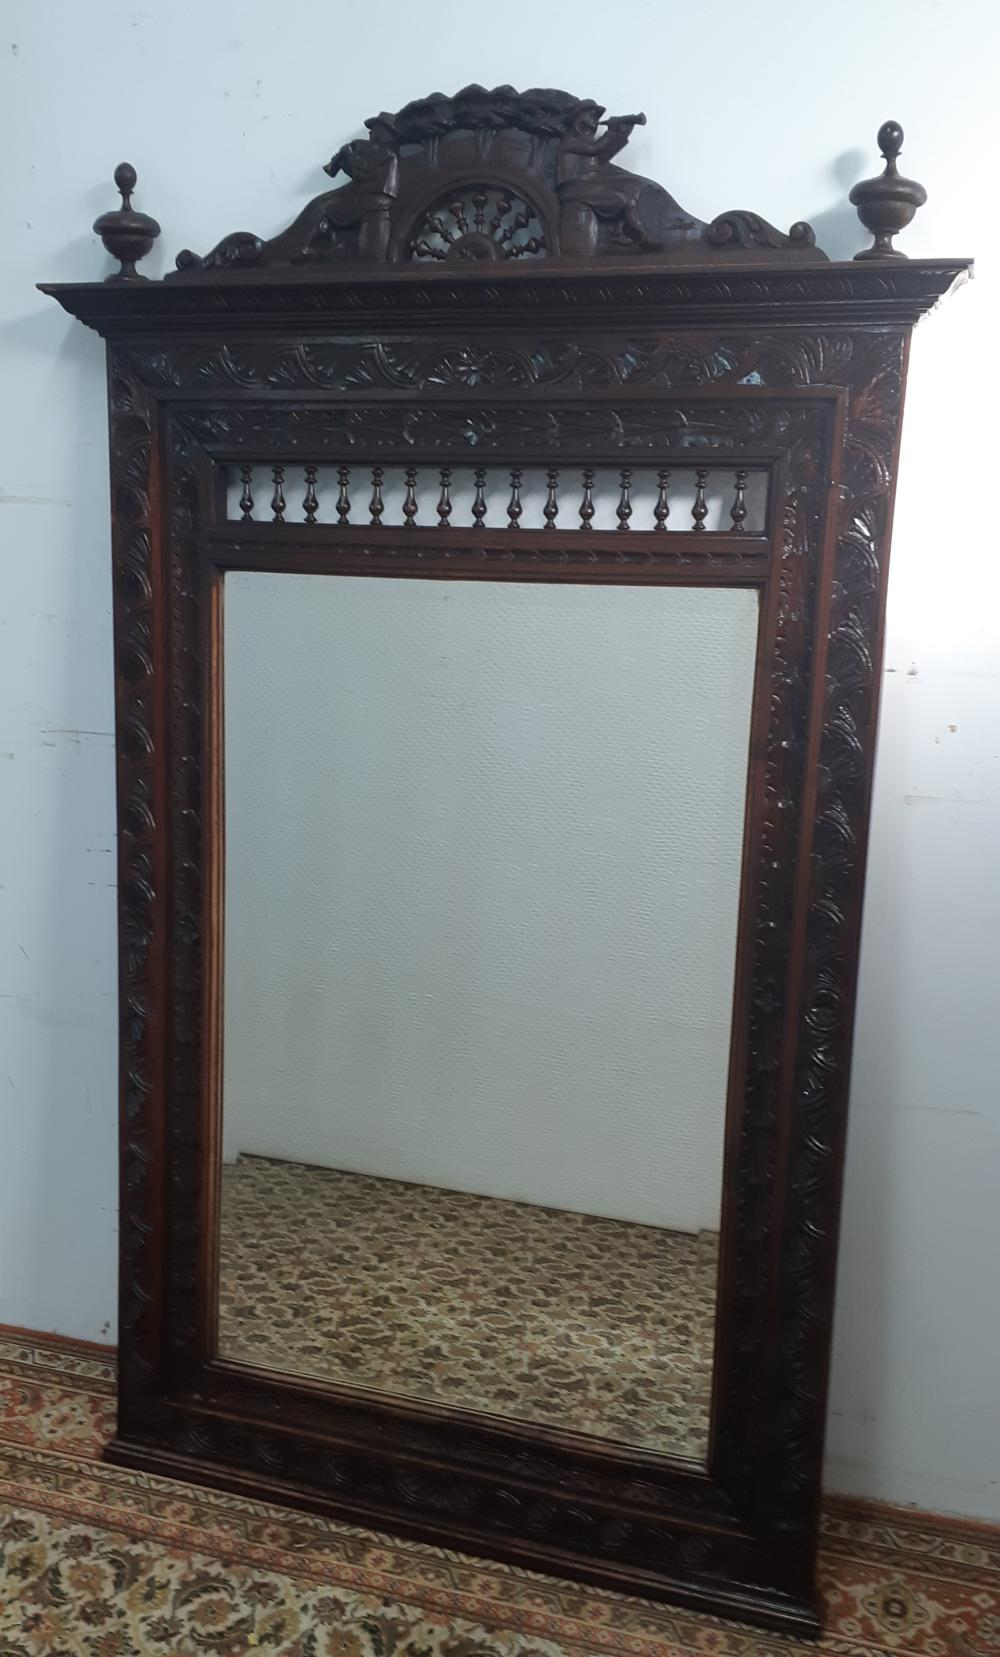 Lot 231: FRENCH CARVED OAK BRITTANY STYLE MIRROR